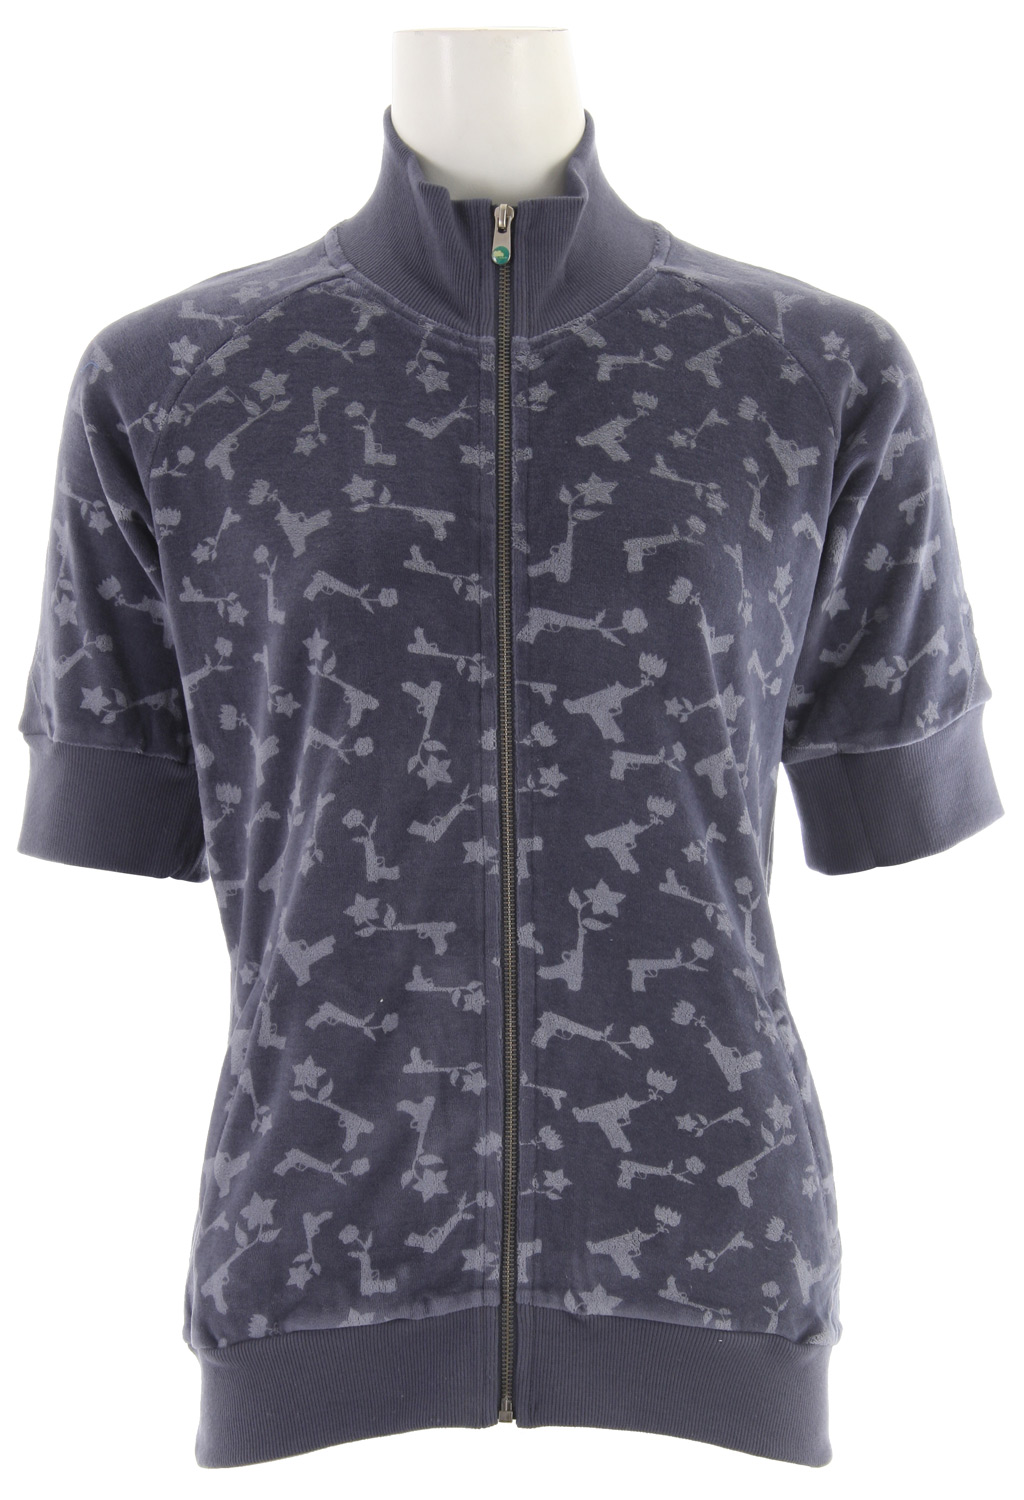 Snowboard Burton Stray Bullet Zip Shirt Night Loch Blue - $18.95